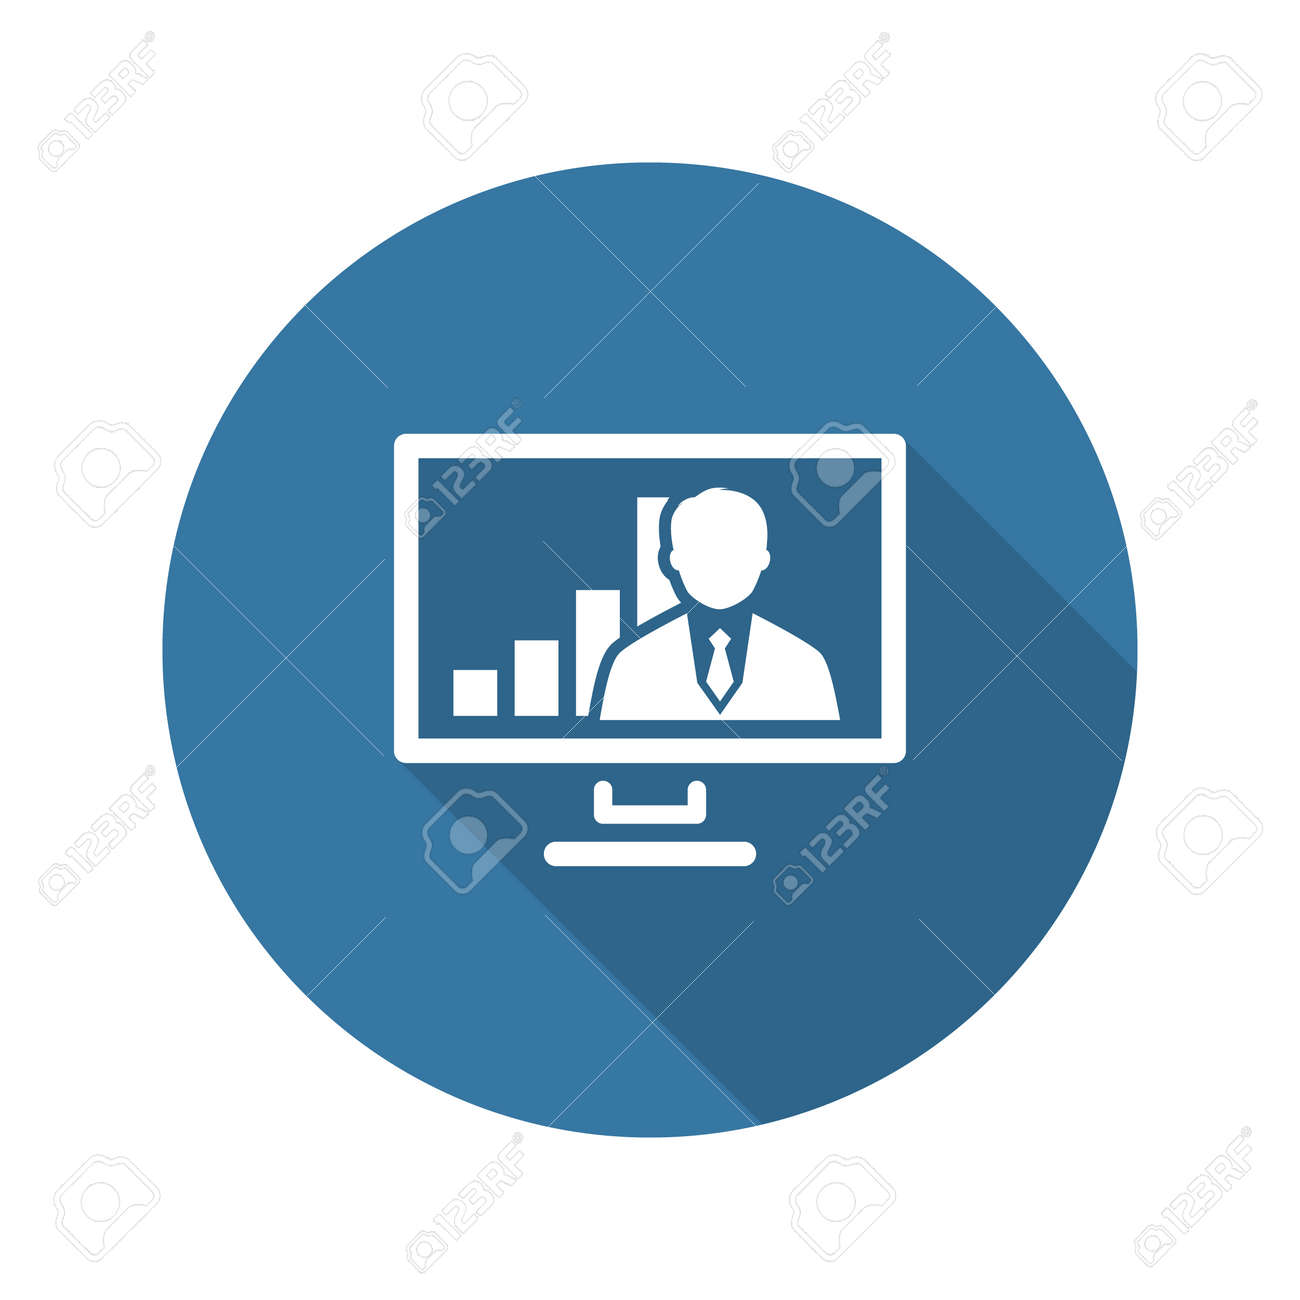 Video Conference Icon. Business Concept. Flat Design. Isolated Illustration. Long Shadow. - 45248286